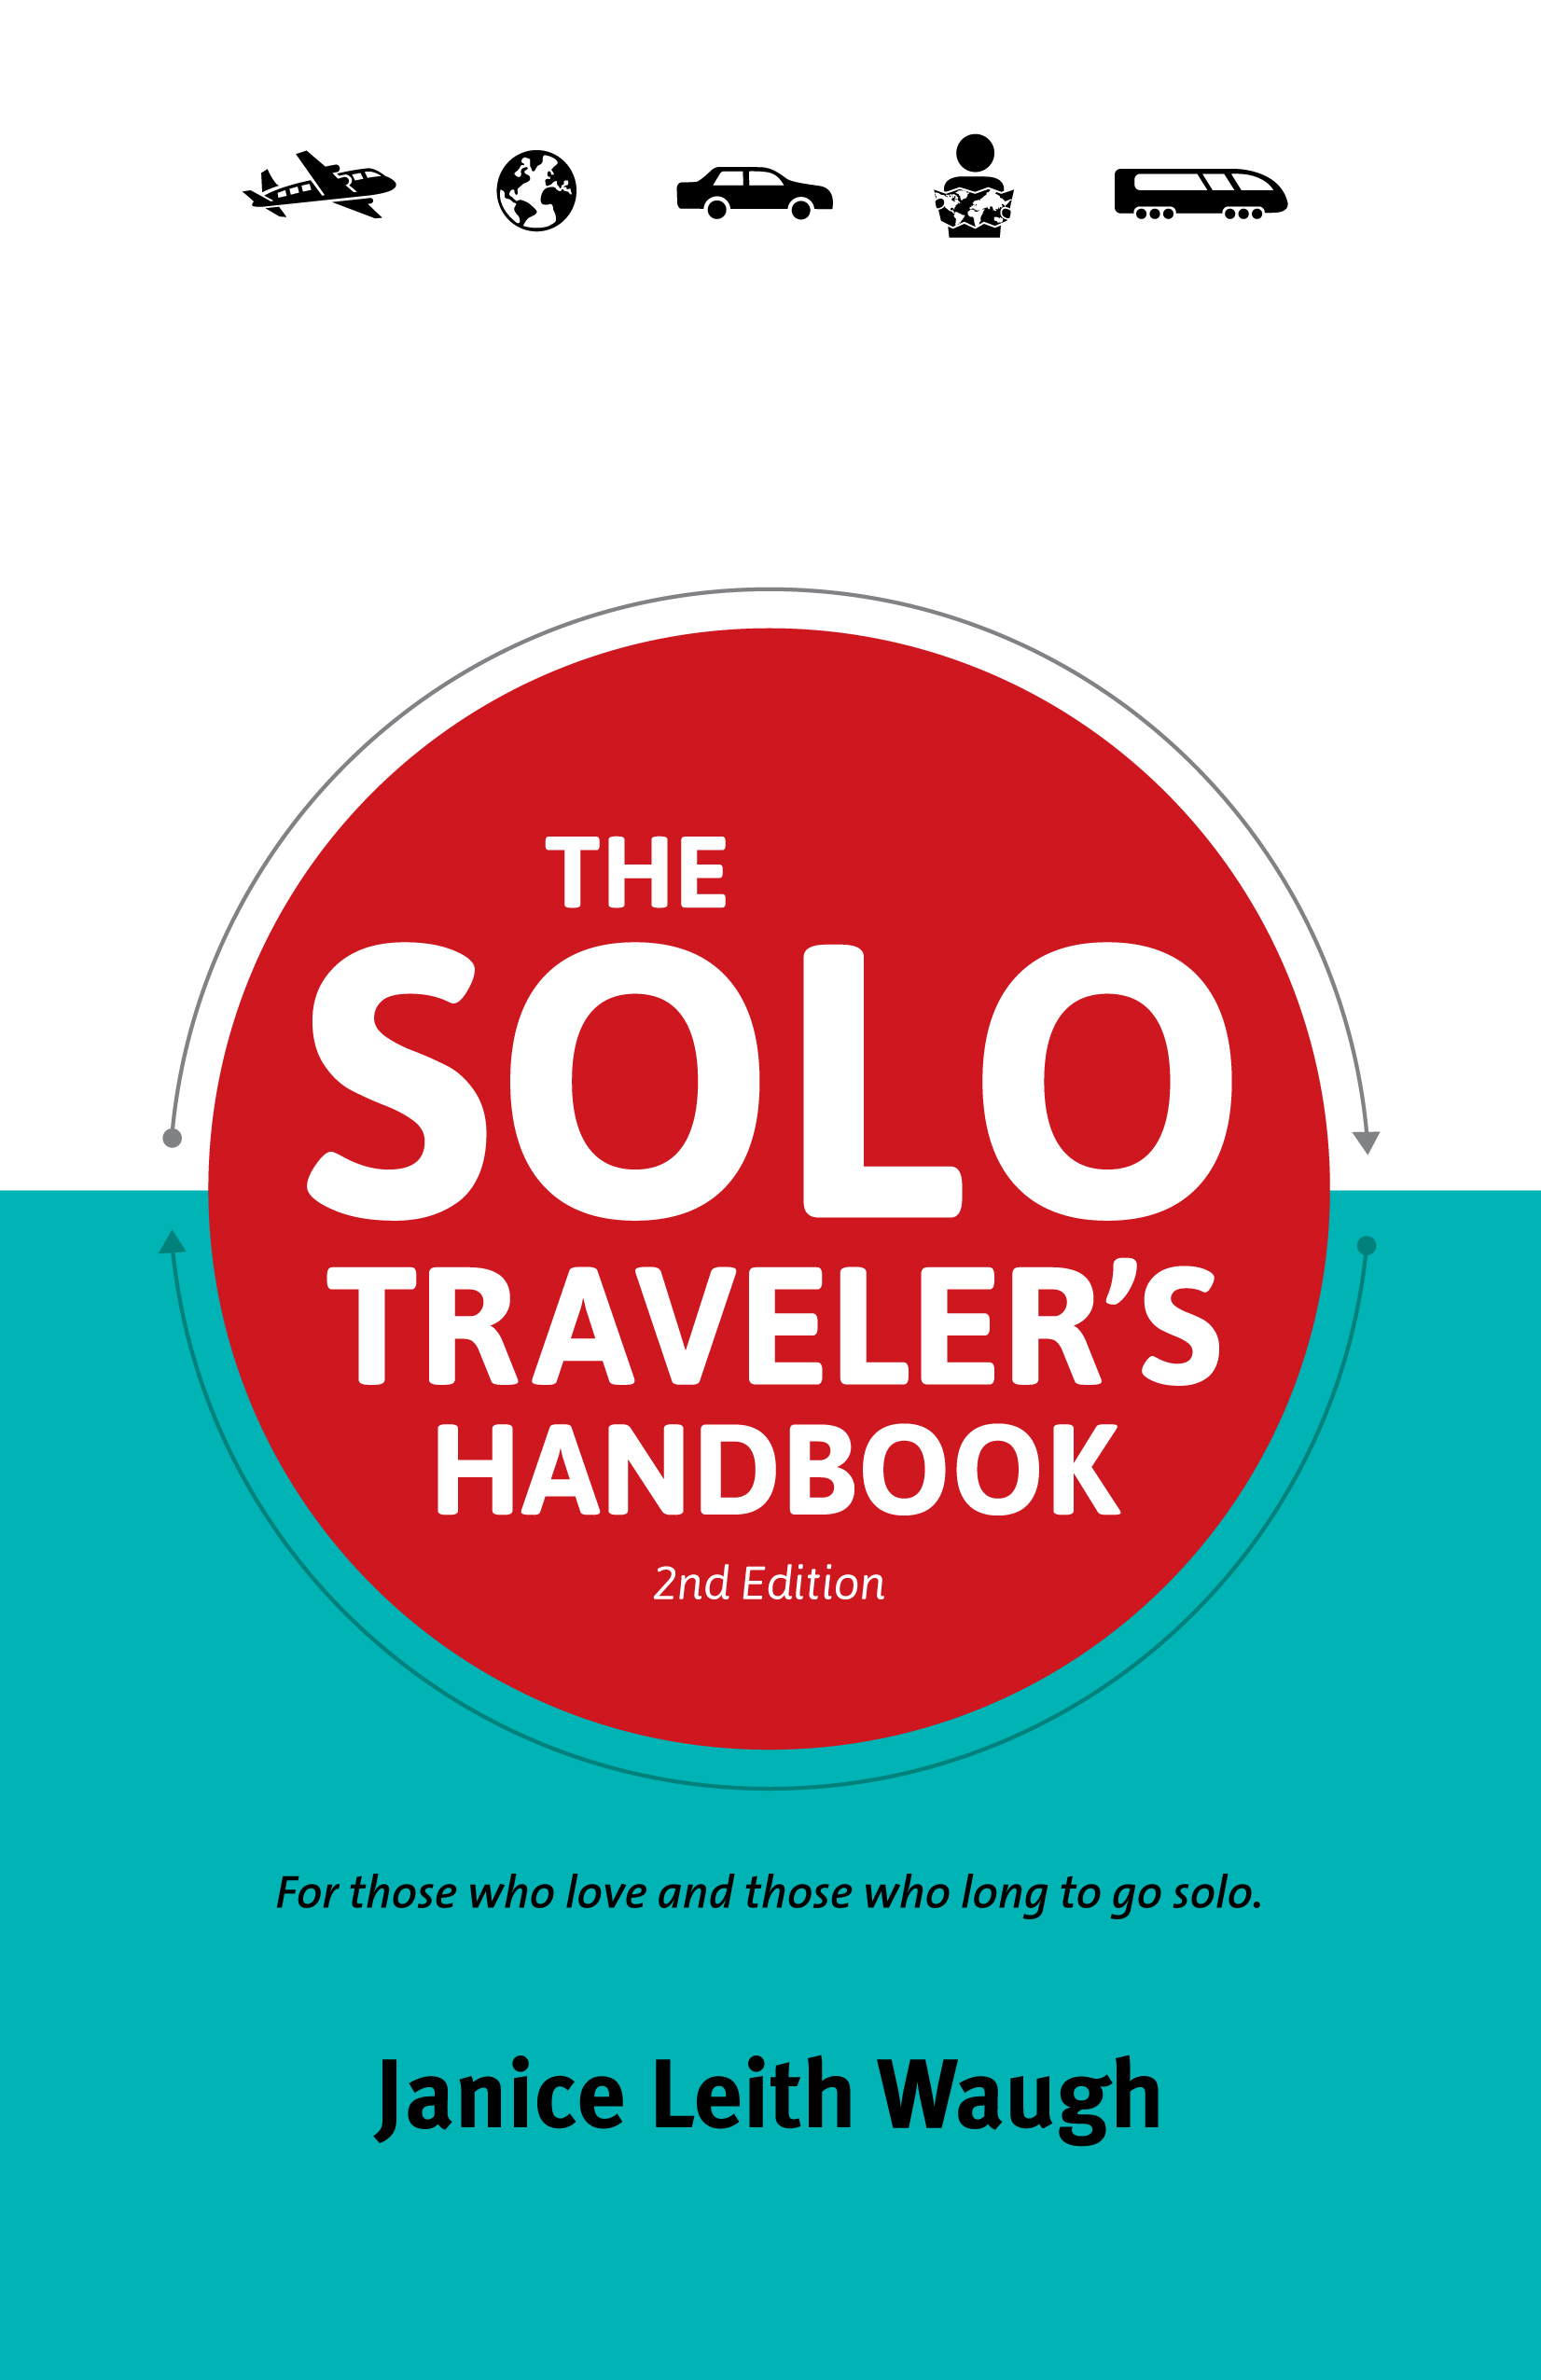 The Solo Traveler's Handbook: For Those Who Love And Those Who Long To Go Solo. By: Janice Leith Waugh